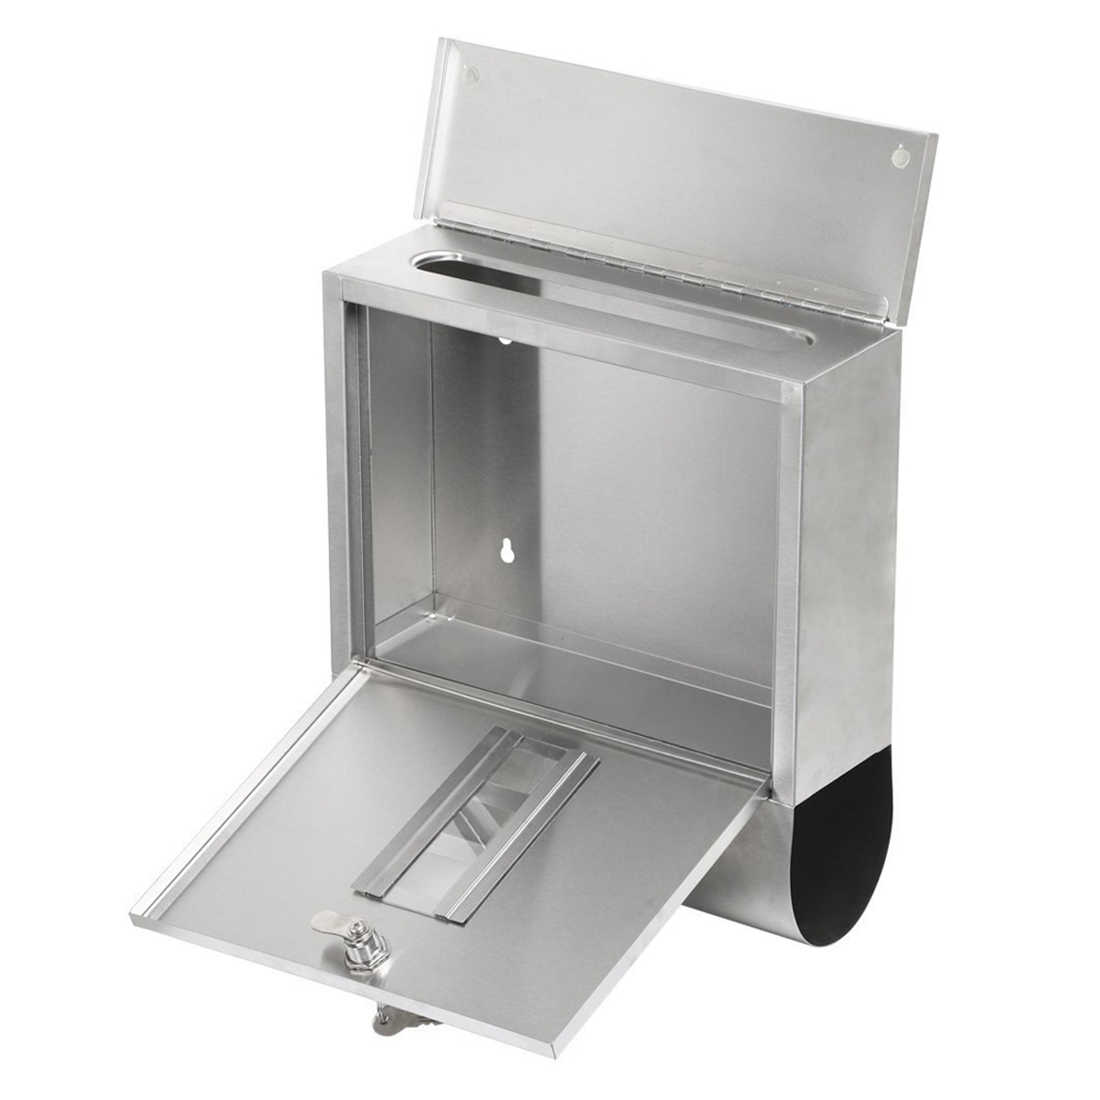 Mailbox stainless steel locking mail box letterbox postal box modern - Practical Waterproof Stainless Steel Lockable Mailbox Newspaper Holder Outdoor Mail Post Letter Box China